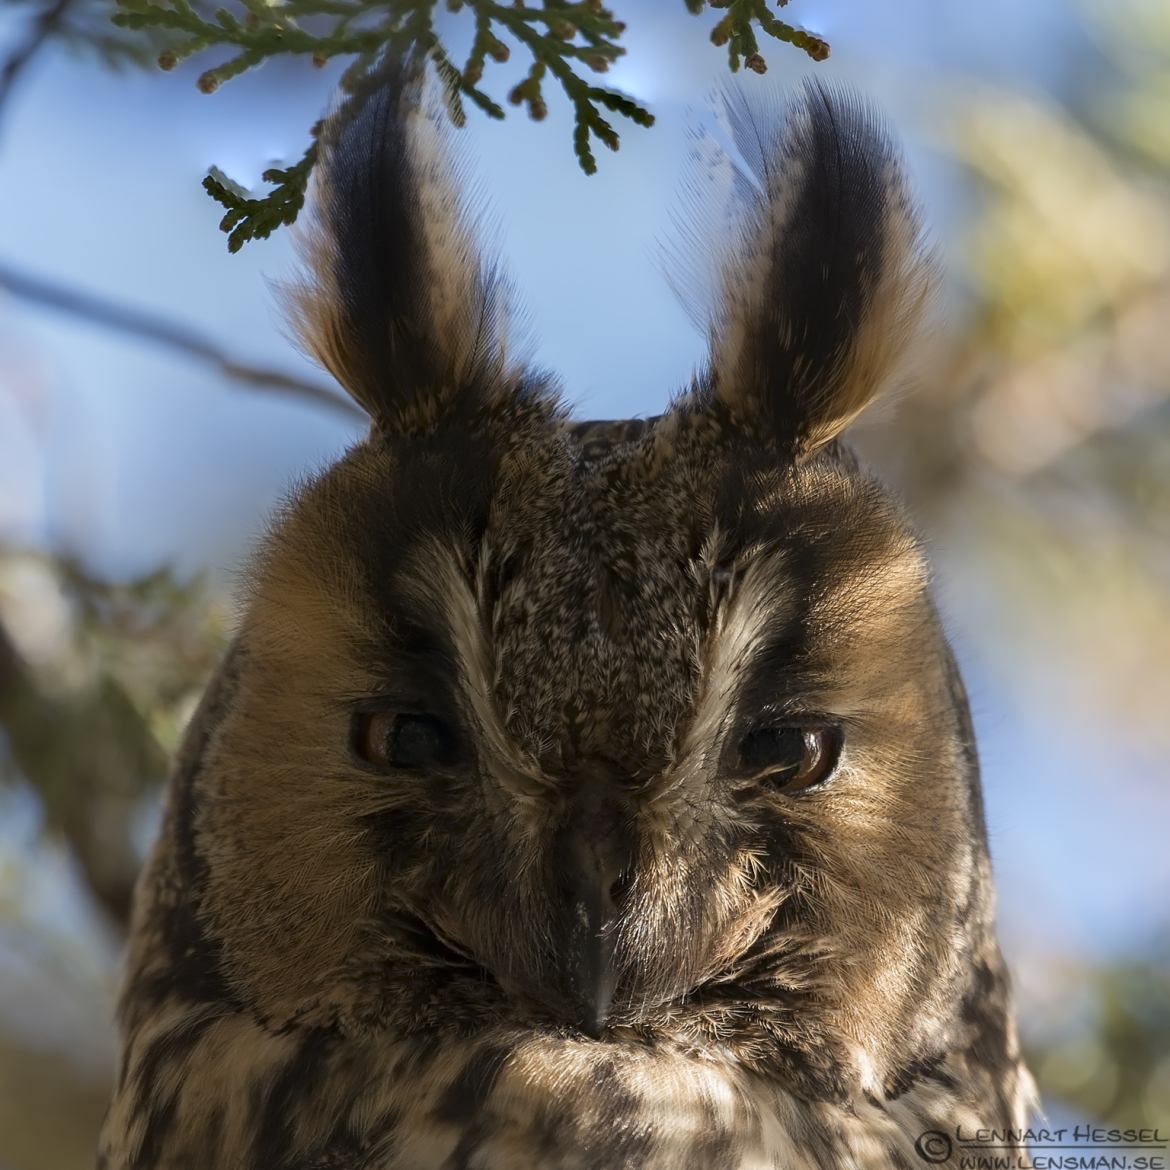 Long-eared Owl closeup in Túrkeve